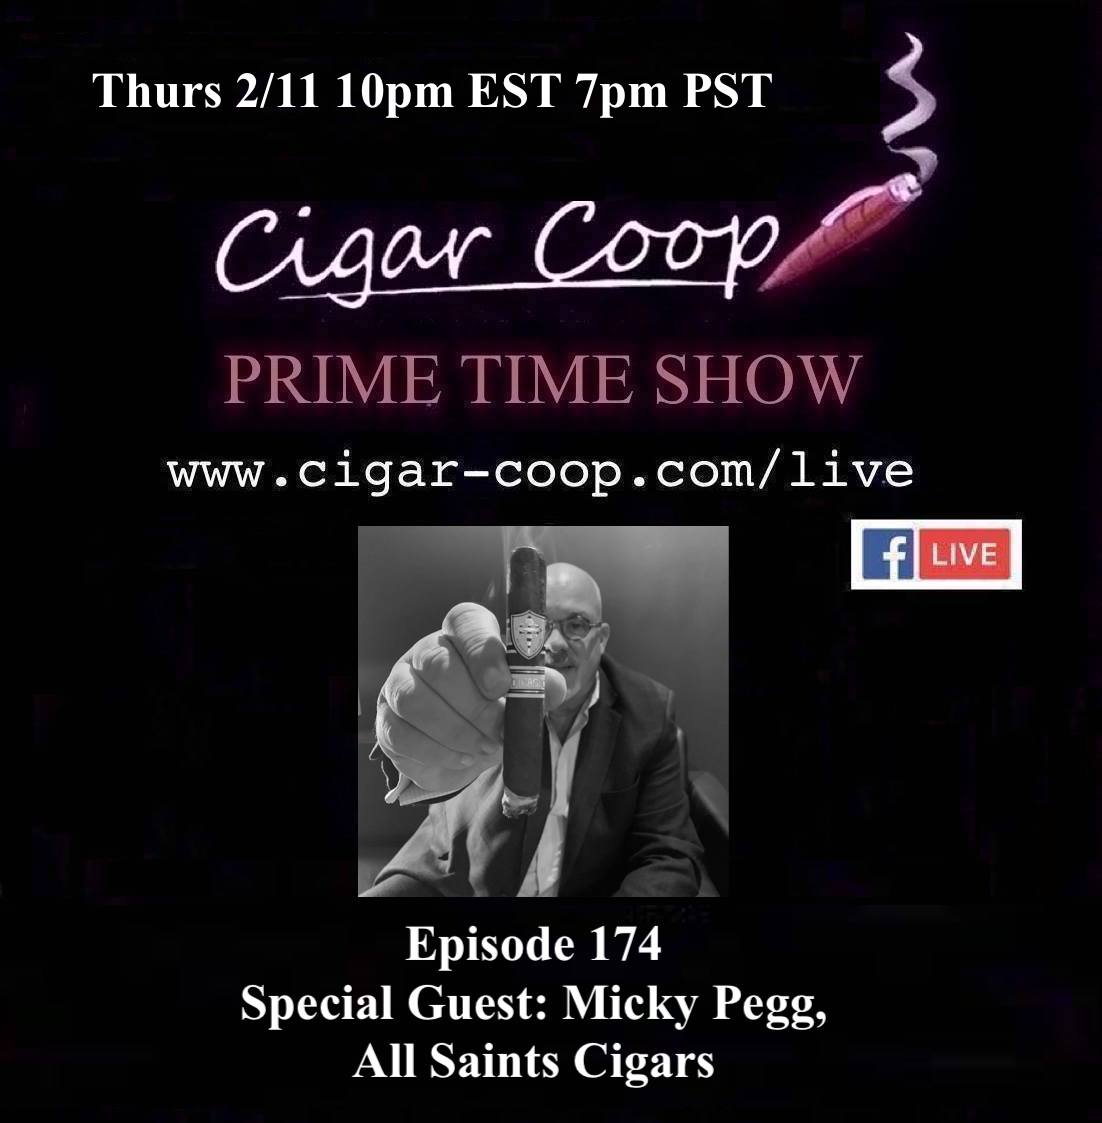 Announcement: Prime Time Episode 174 – Micky Pegg, All Saints Cigars